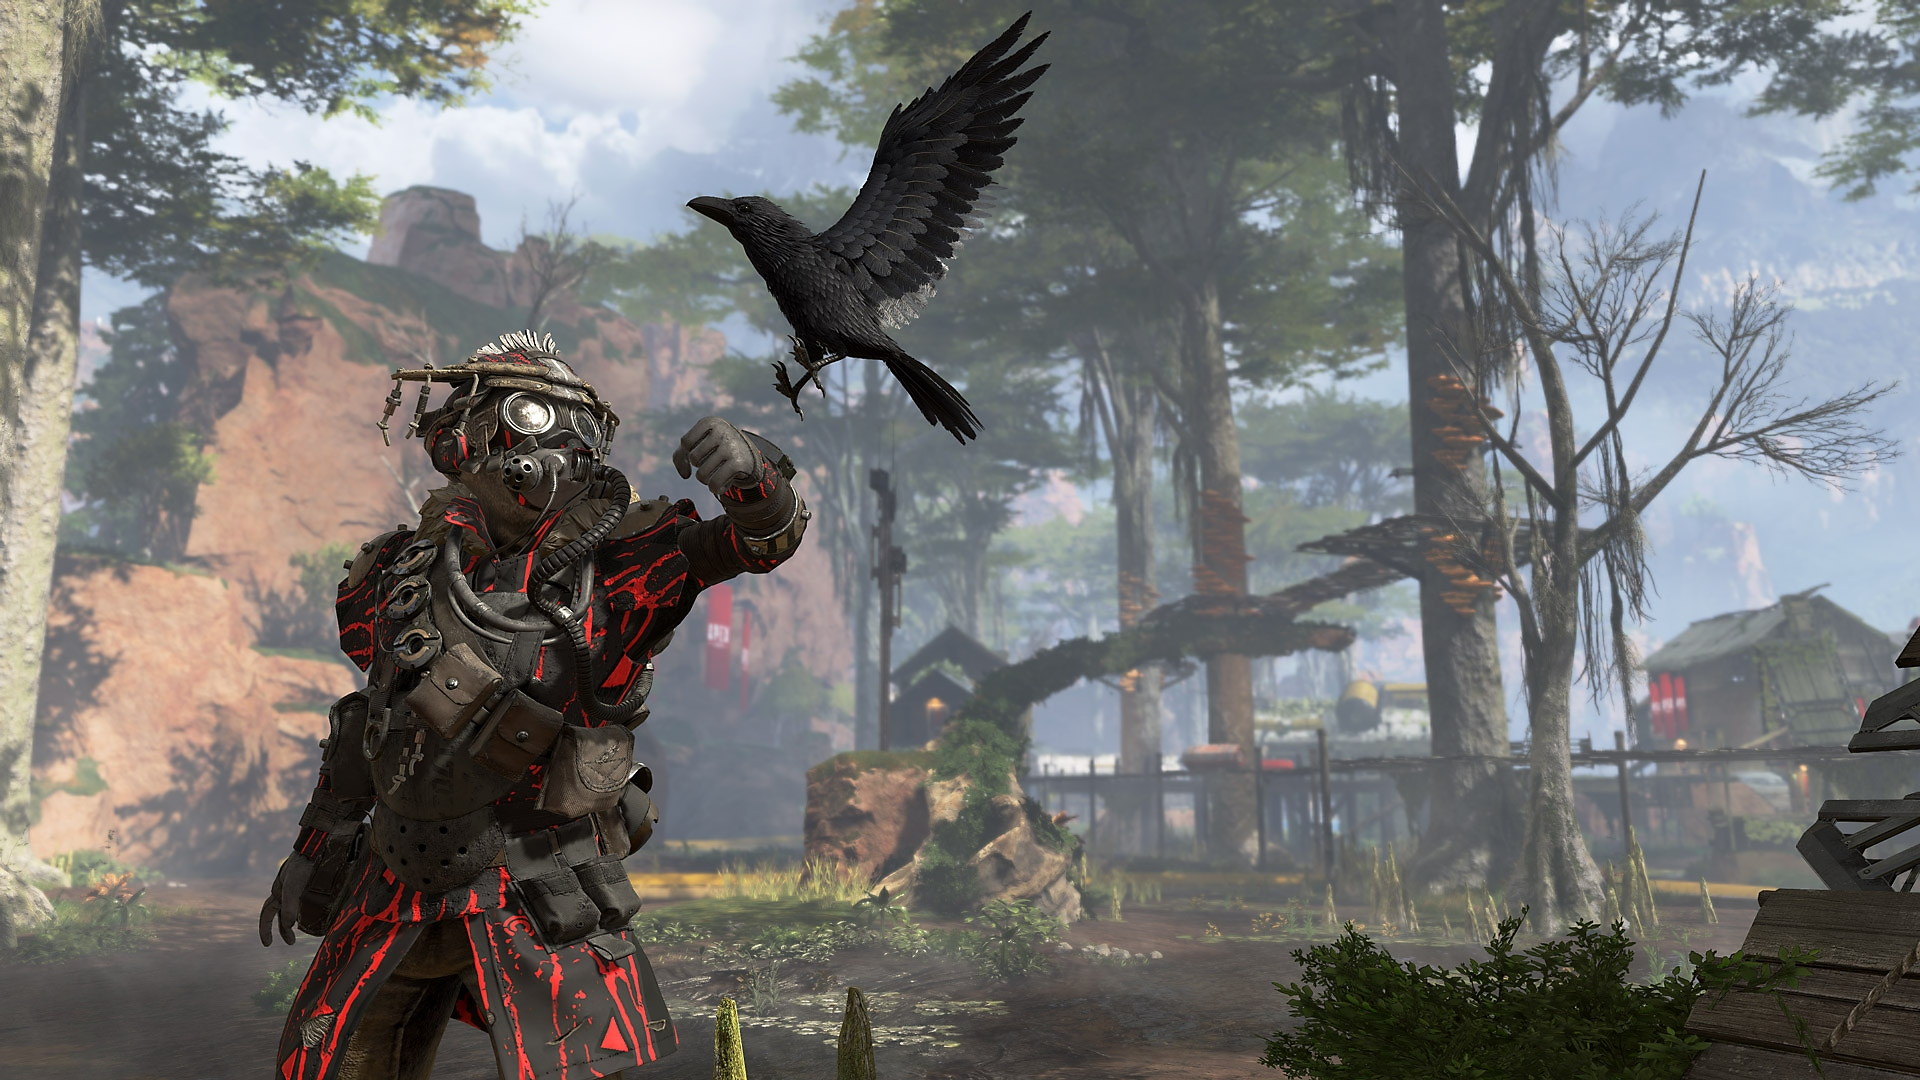 Apex Legends - Captura de pantalla de vehículo Trident